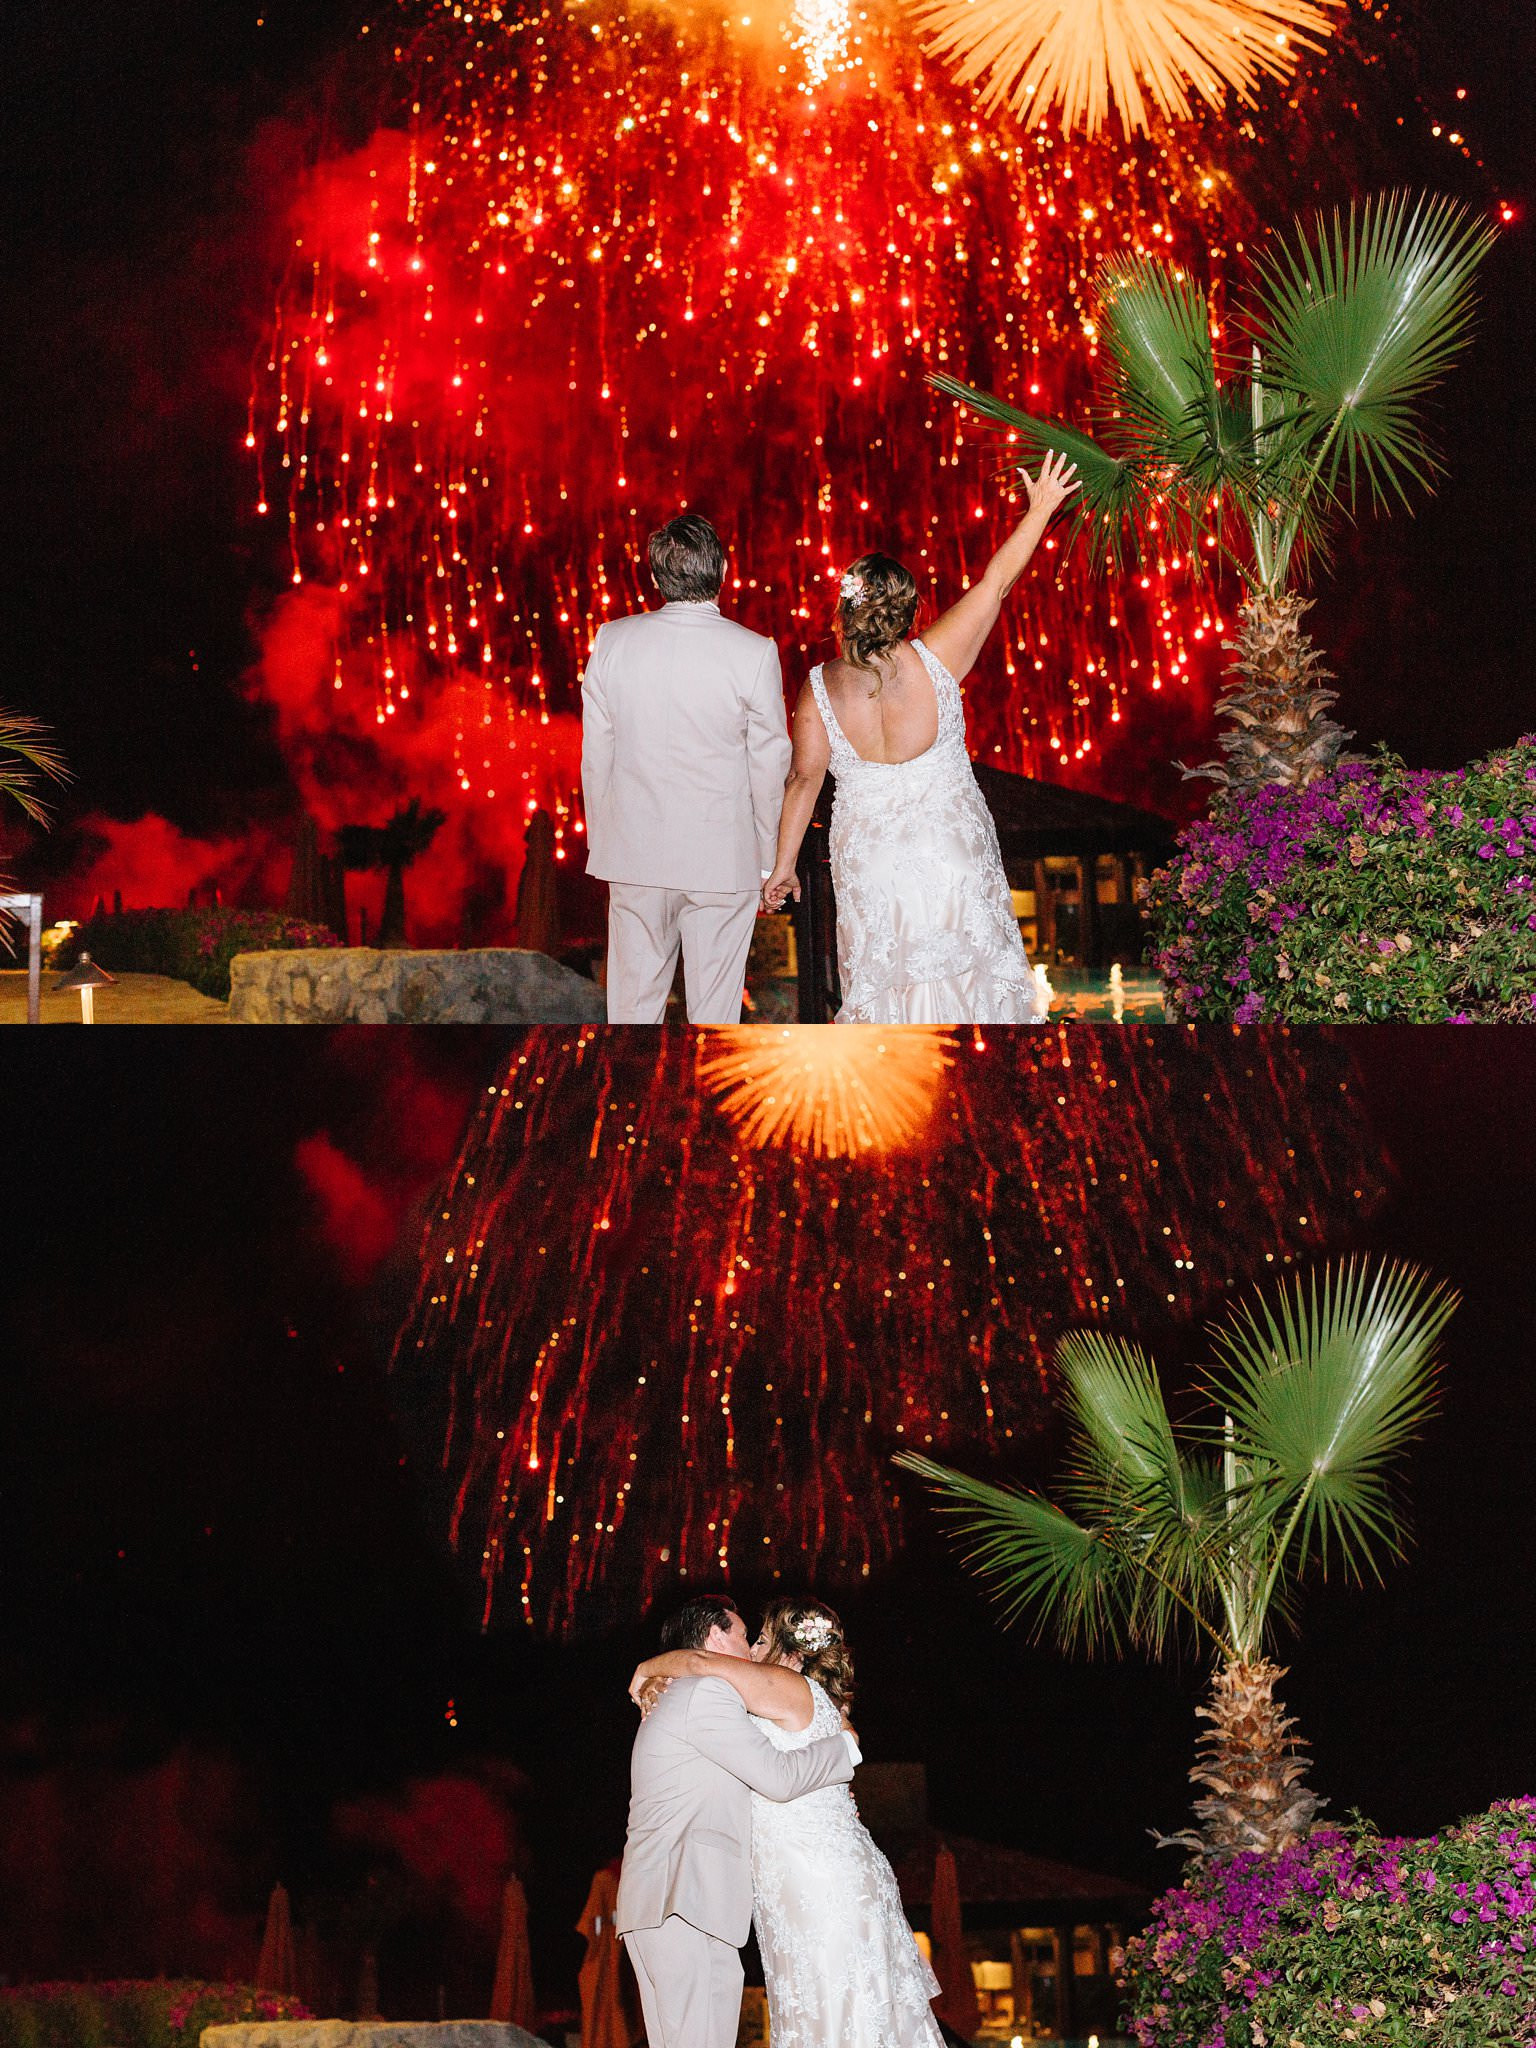 Fireworks at Wedding Reception - Beach Wedding in Cabo San Lucas Mexico - https://brittneyhannonphotography.com